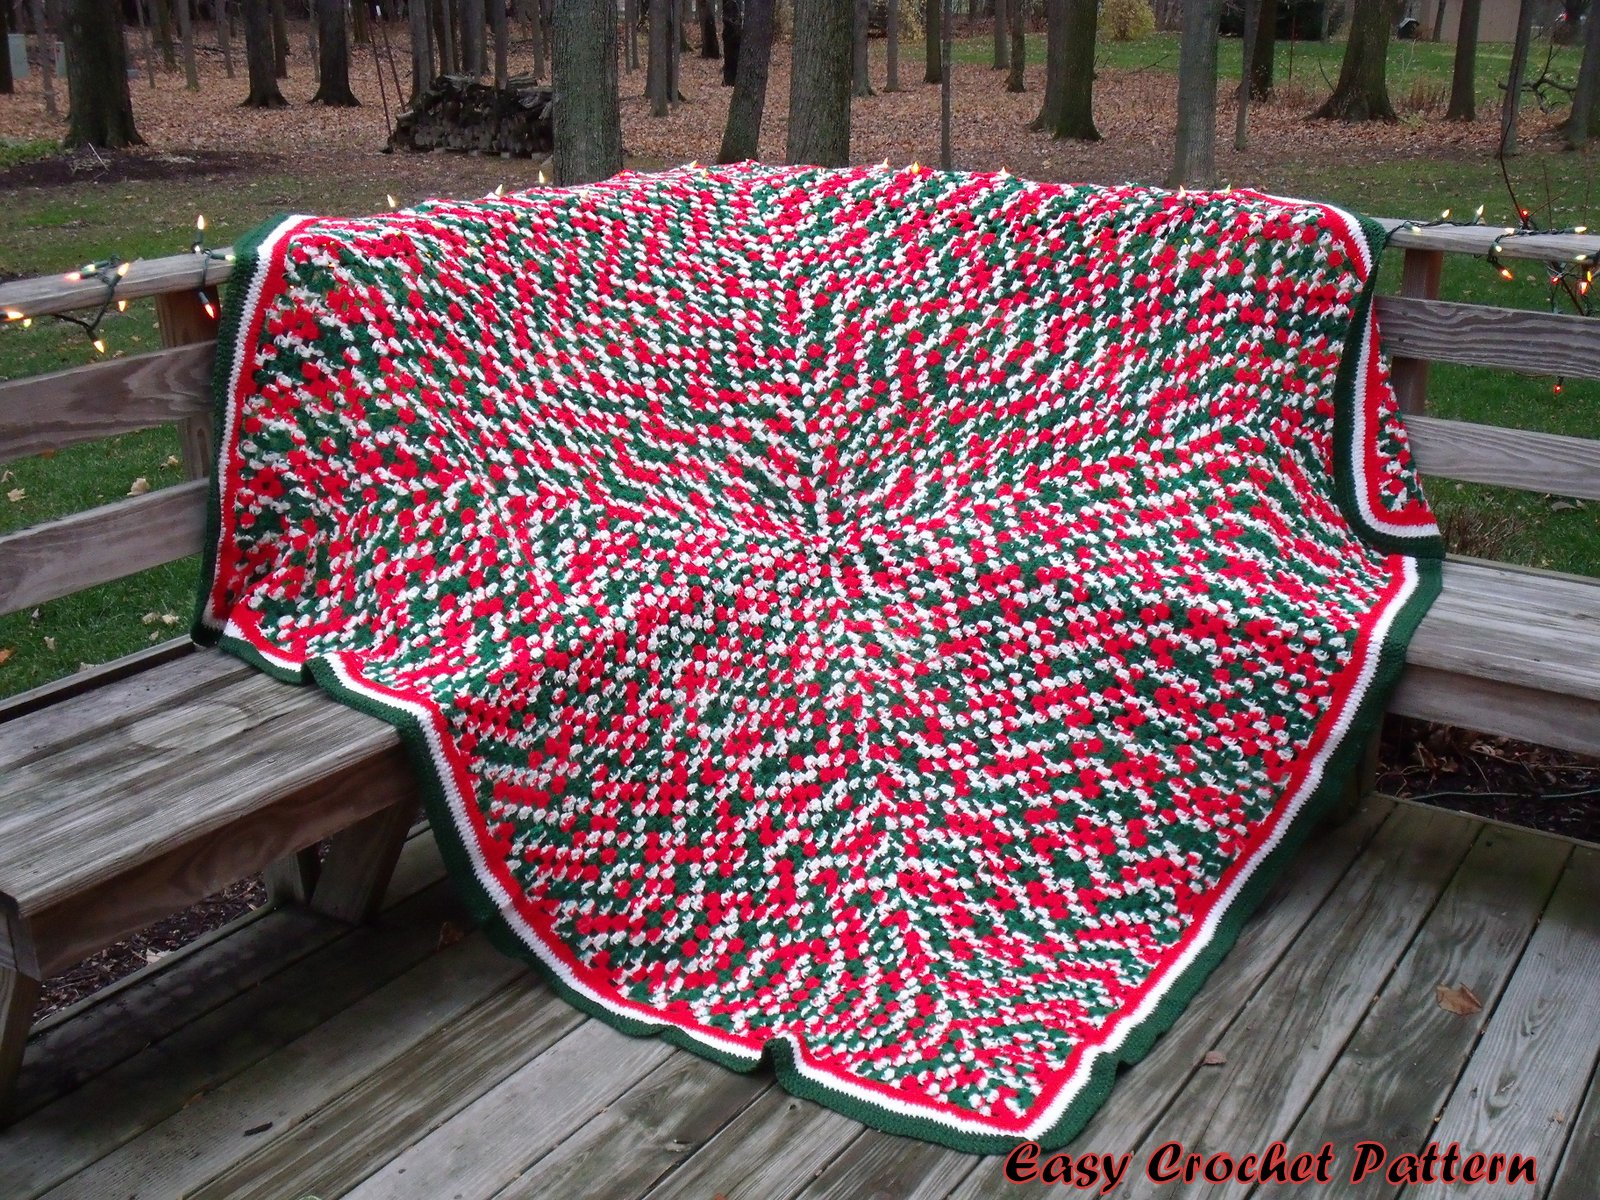 Crochet Patterns Afghan Blanket : Easy Crochet Pattern: Crocheted Christmas Afghans and Tree Skirt